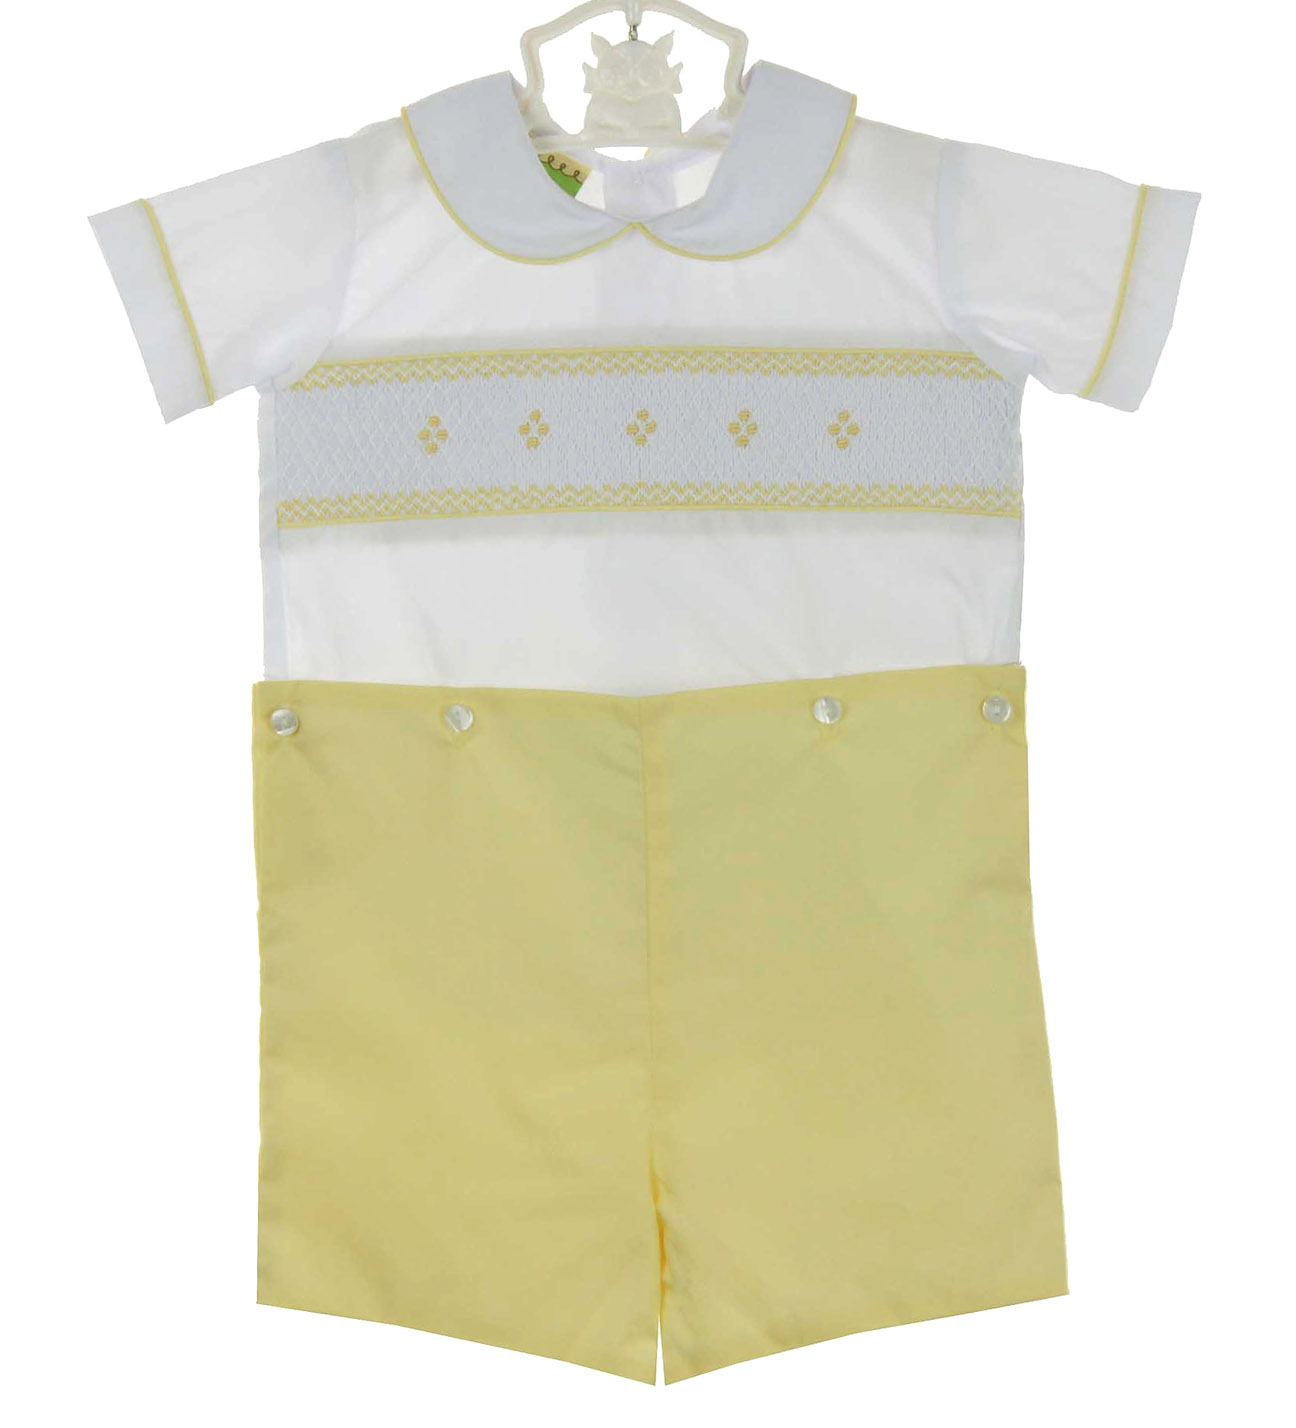 Knit Toddler Boys Outfits